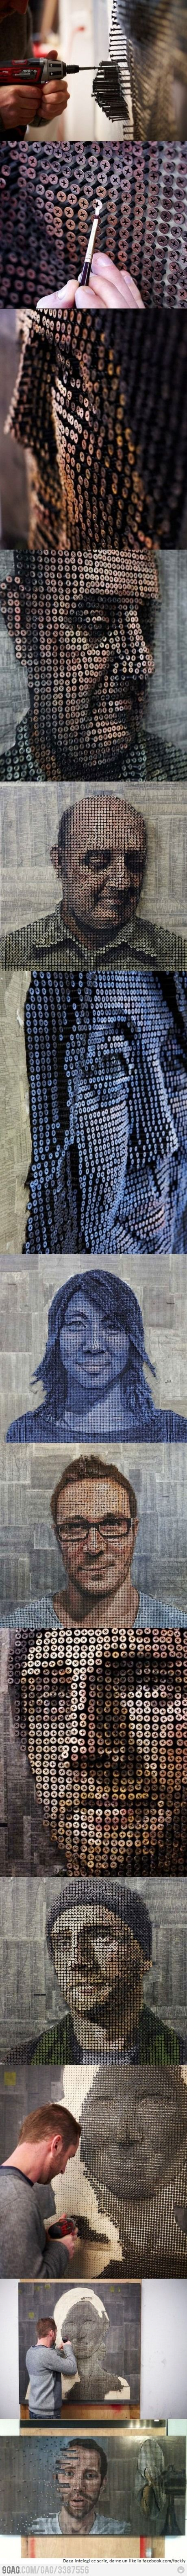 Sensationelle Schraubenportraits - 3D portraits made out of screws by Andrew Myers